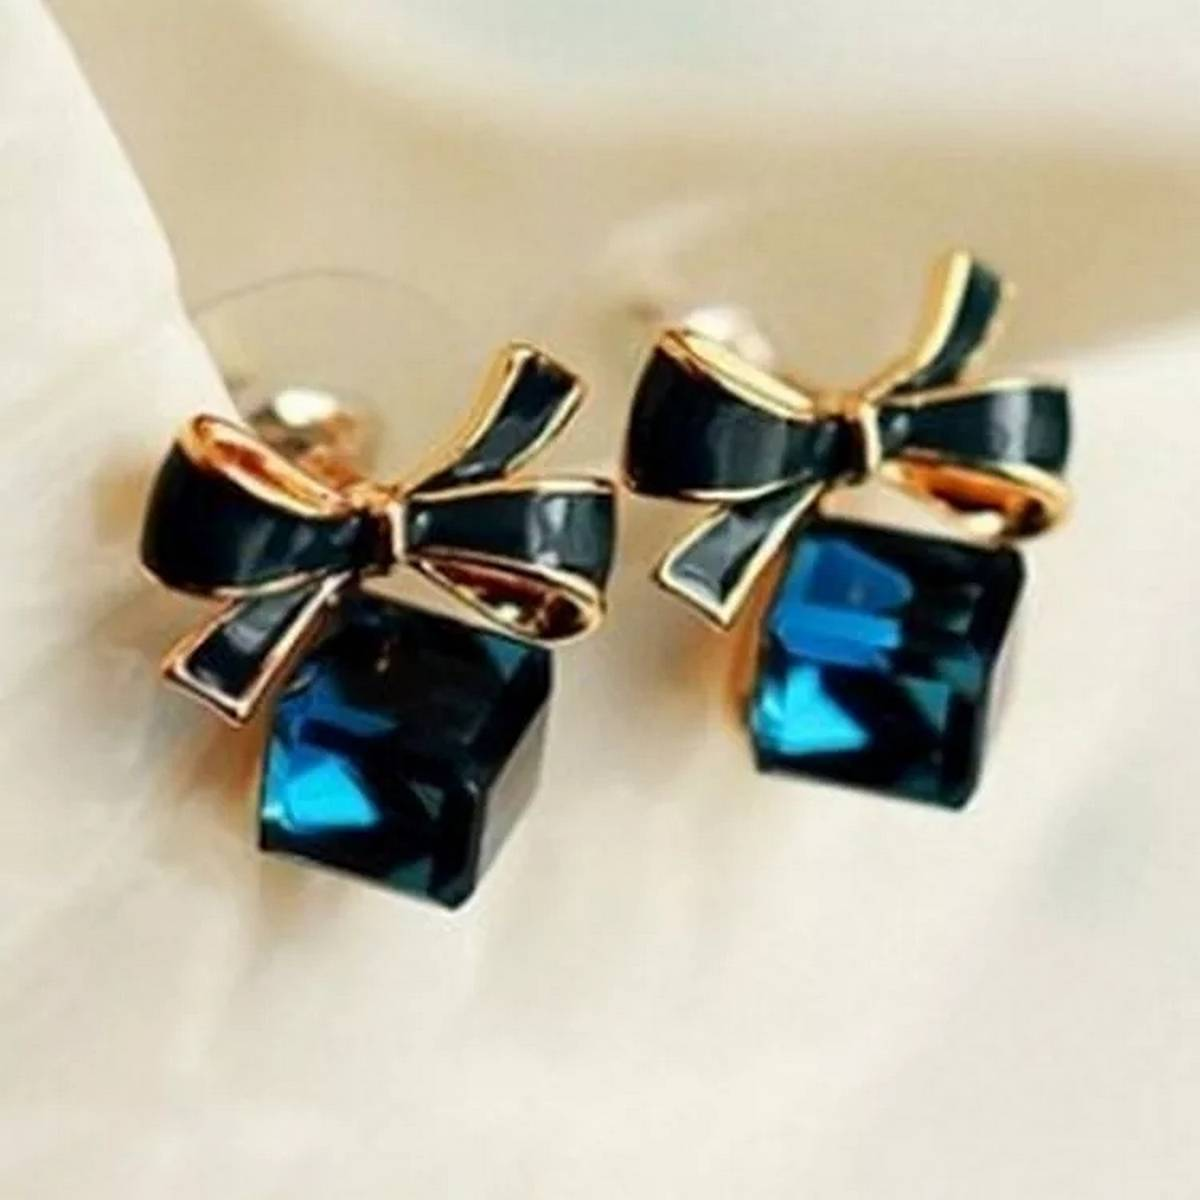 New Fashion Blue Crystal Square shped Ear stud earrings for wedding, events